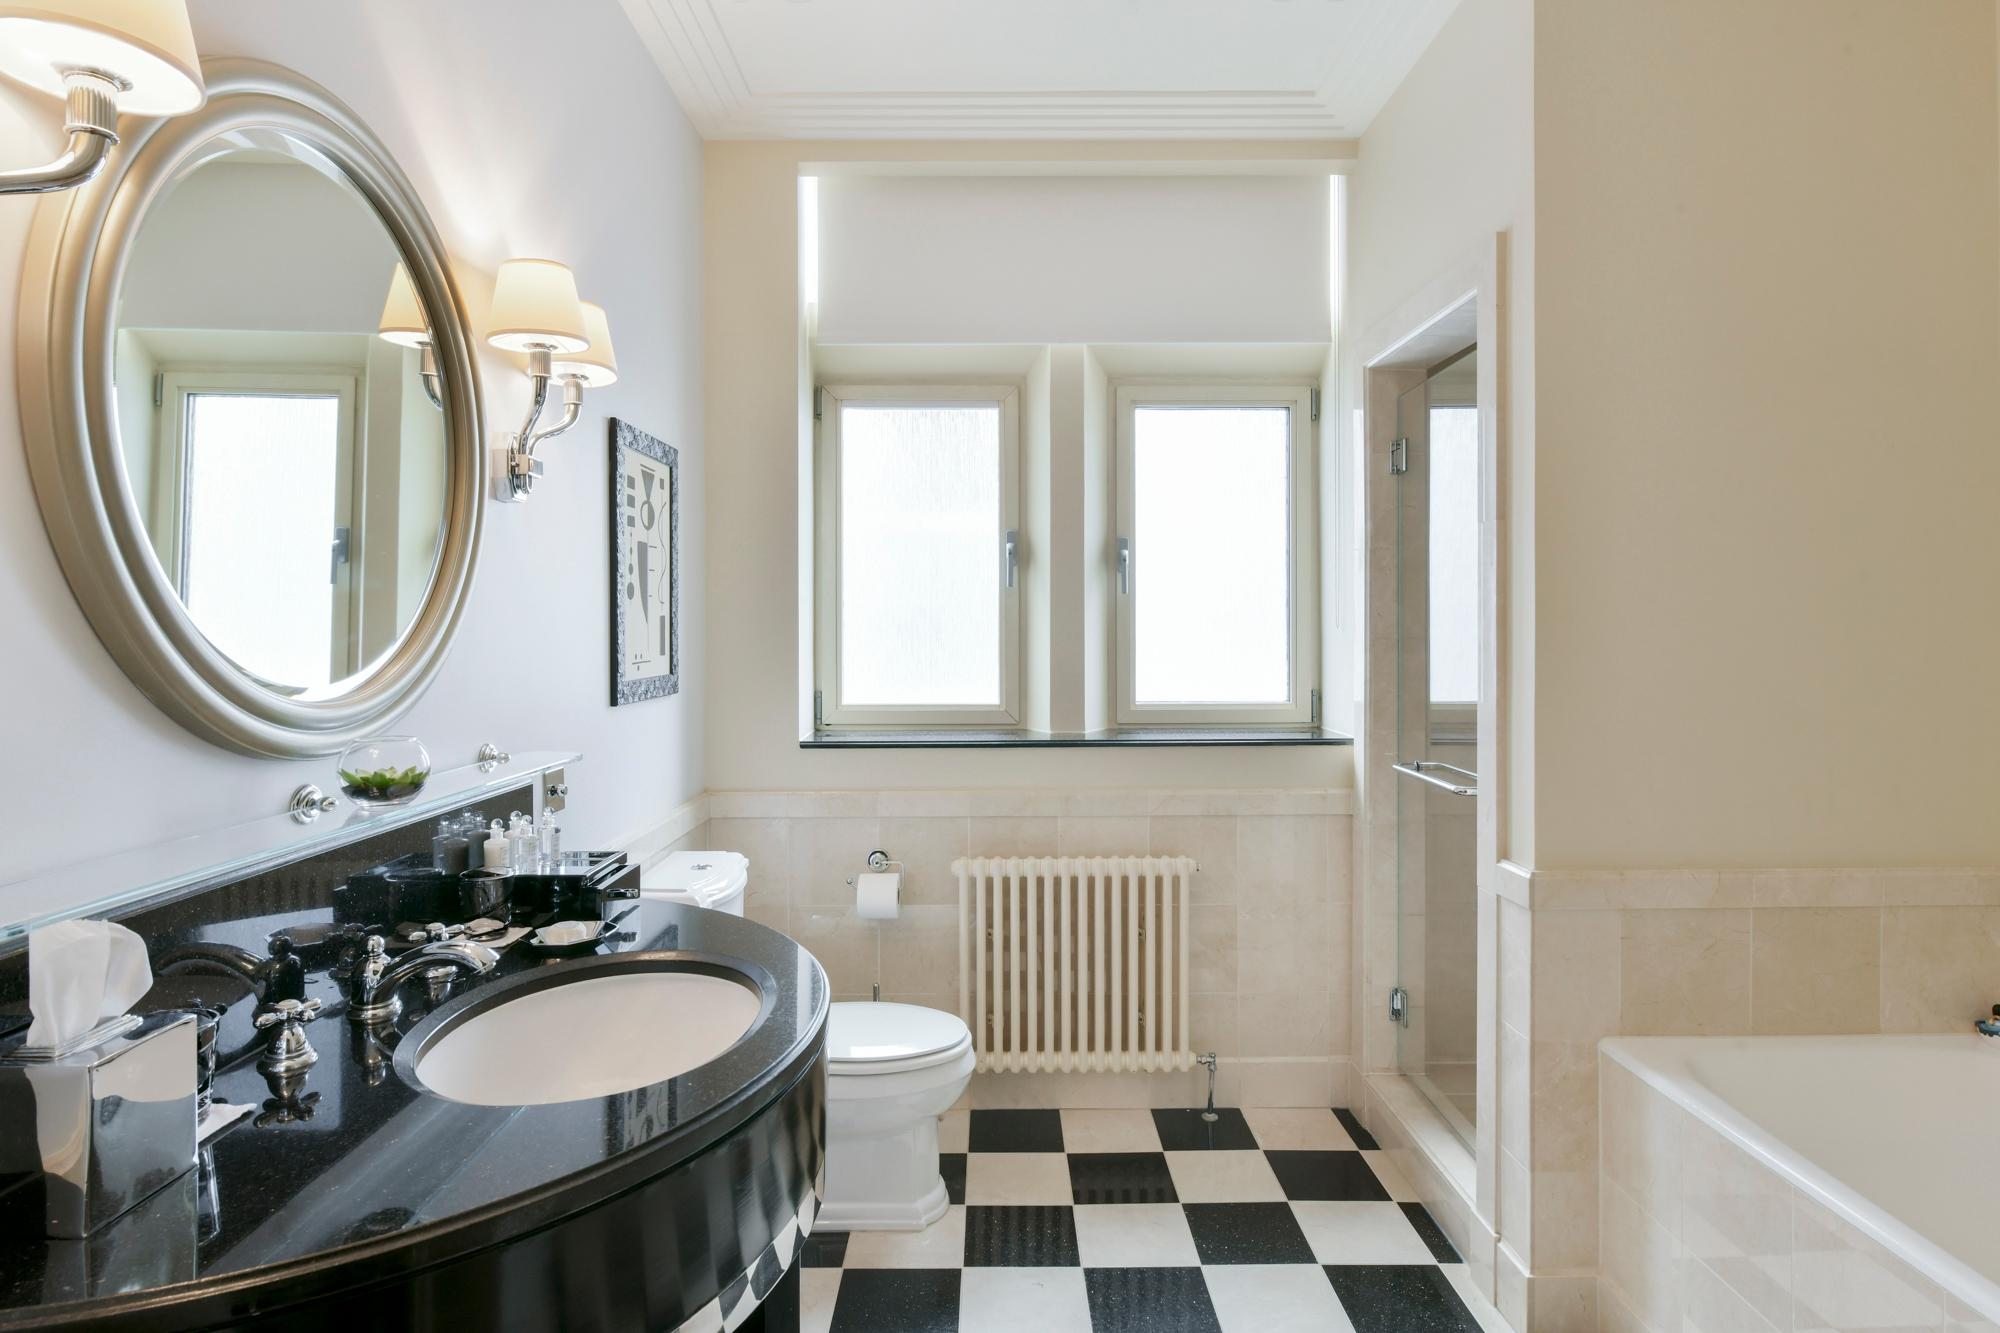 Luxury King Room Art Deco Bathroom